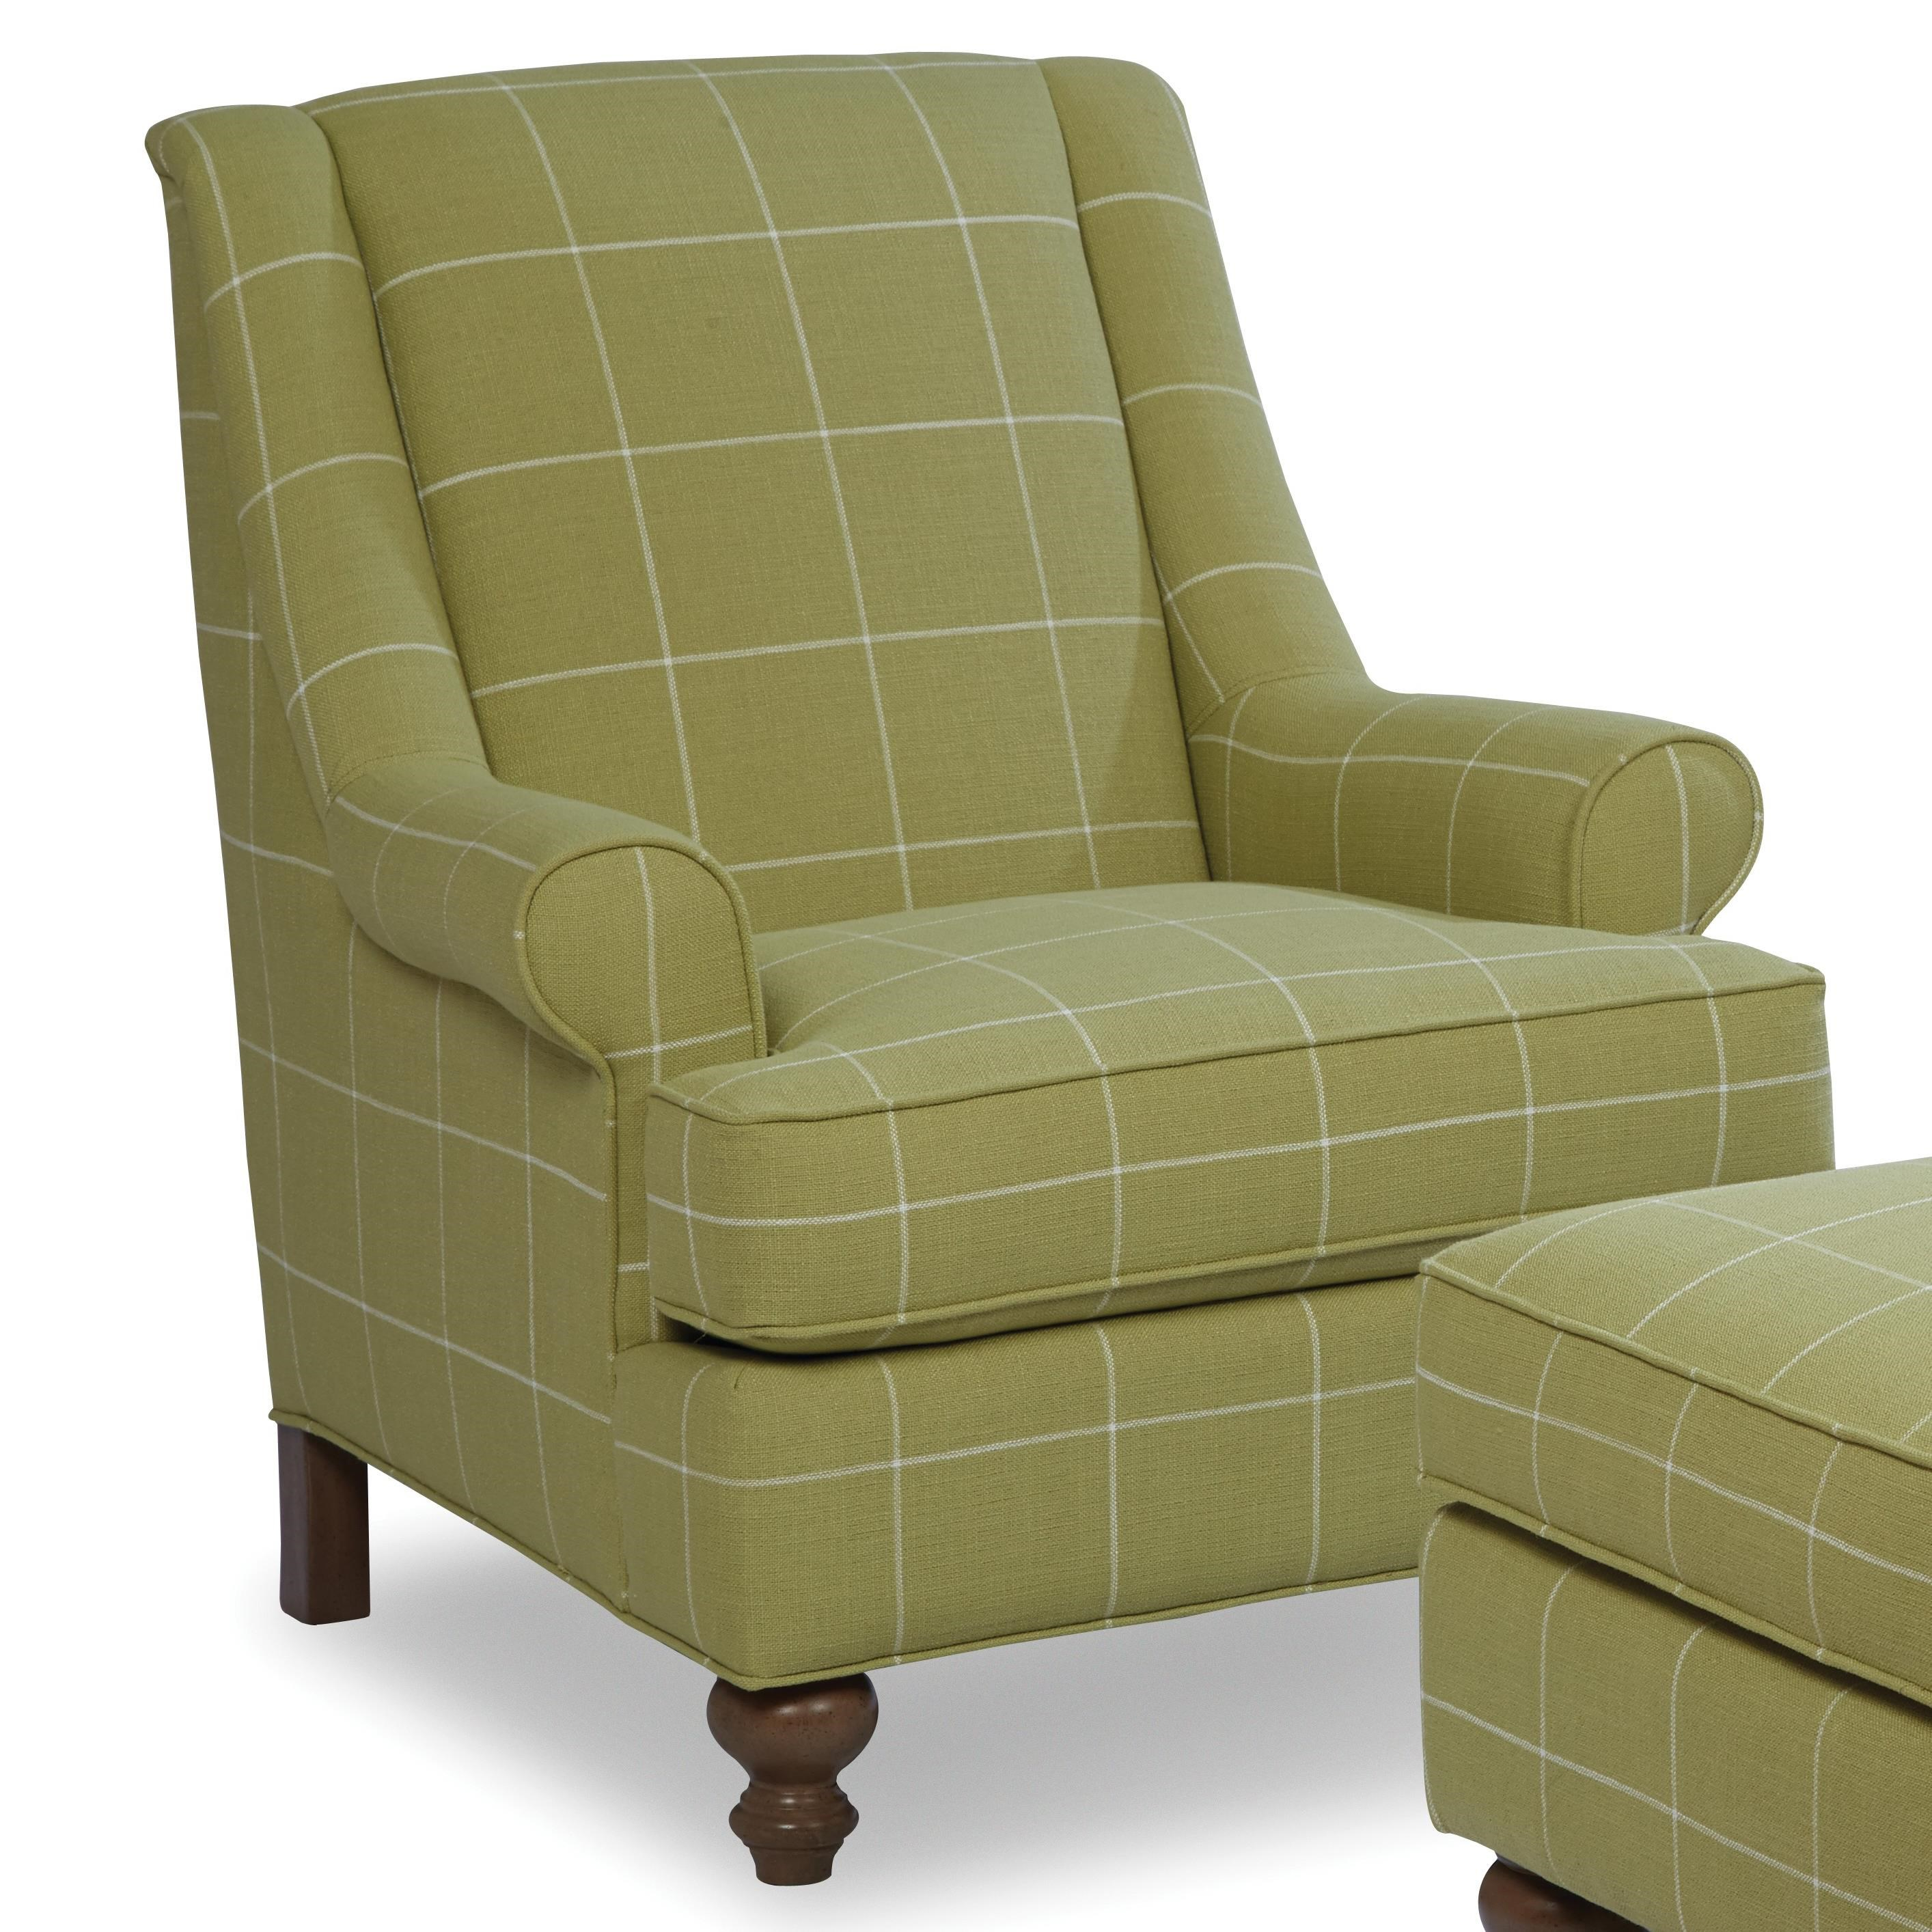 Paula Deen By Craftmaster Paula Deen Upholstered Accents Traditional Chair  With Modified Wing Back And Turned